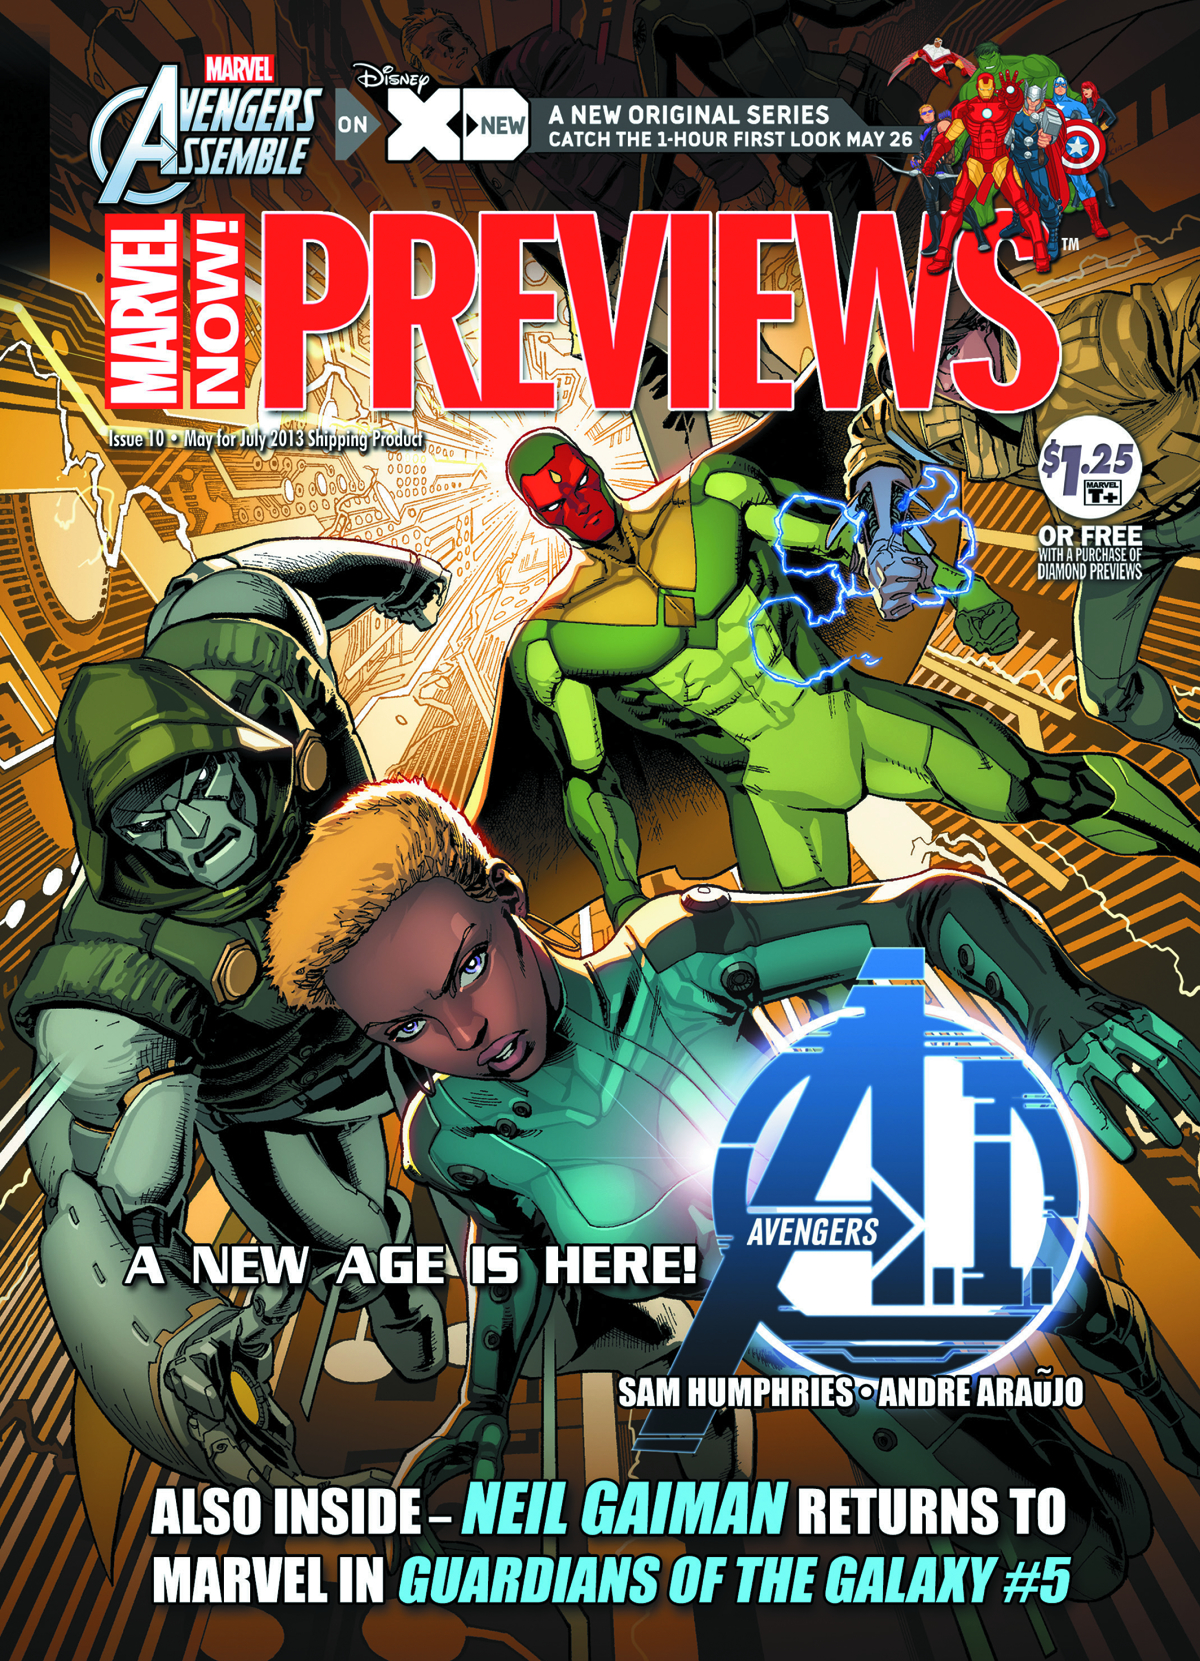 MARVEL PREVIEWS MAY 2013 EXTRAS